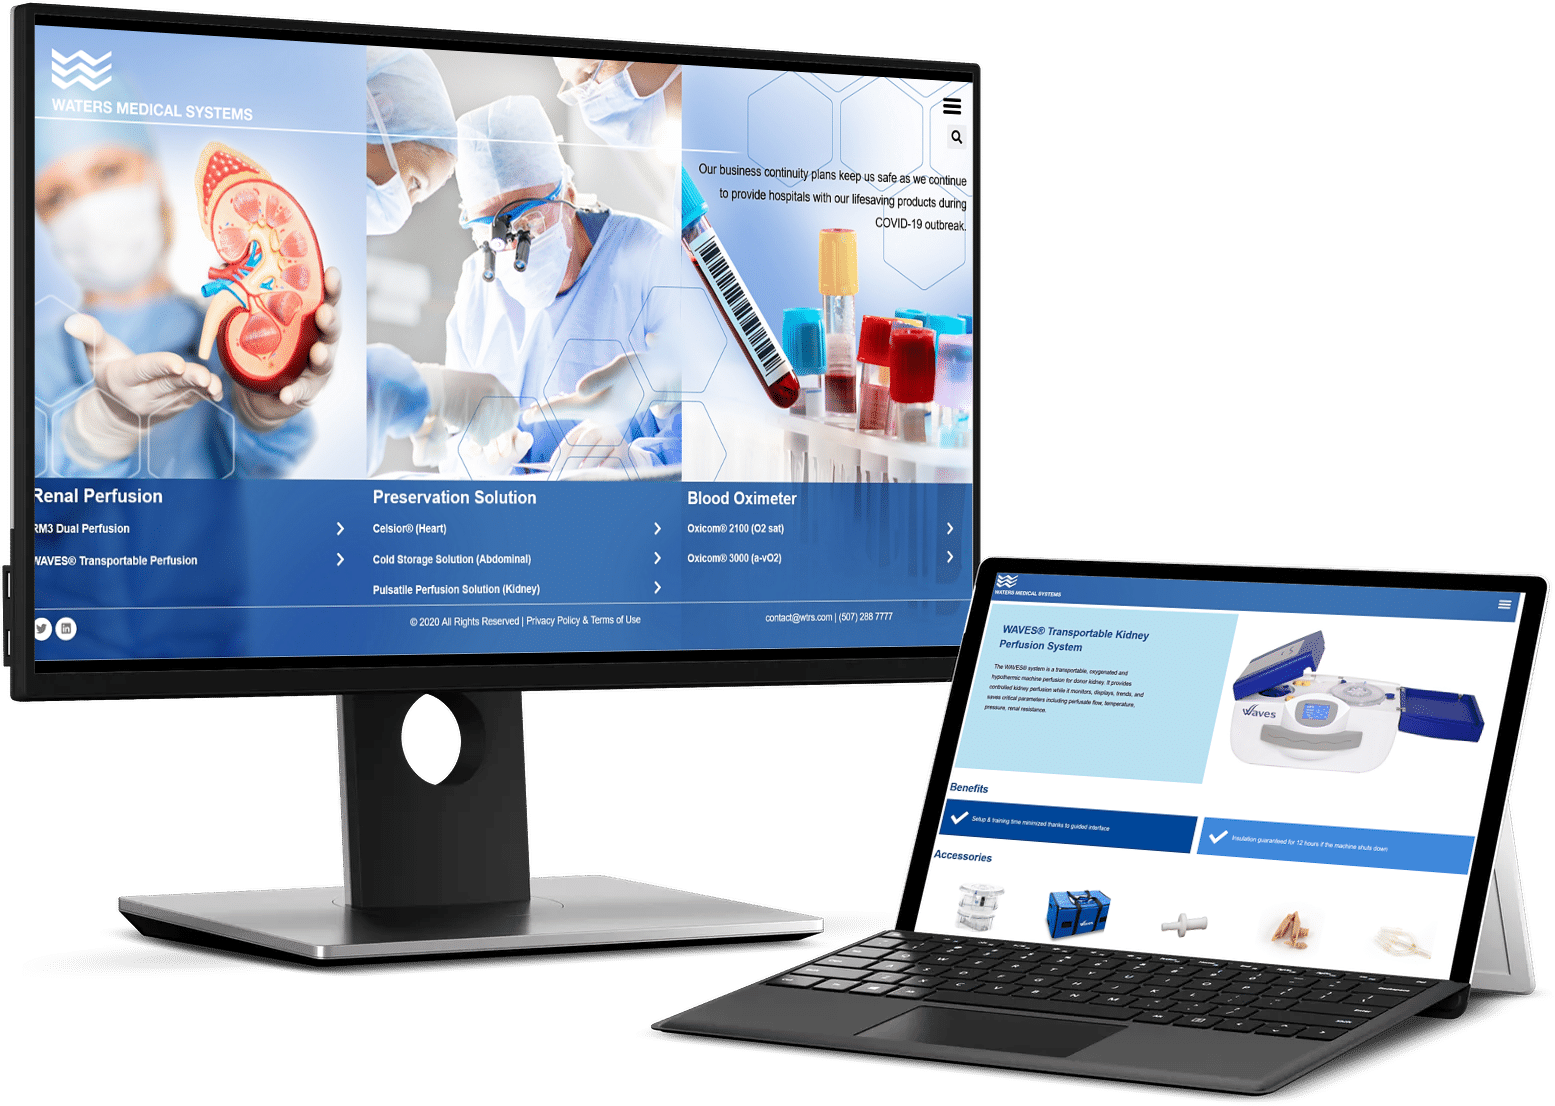 Refonte de site web – Waters medical